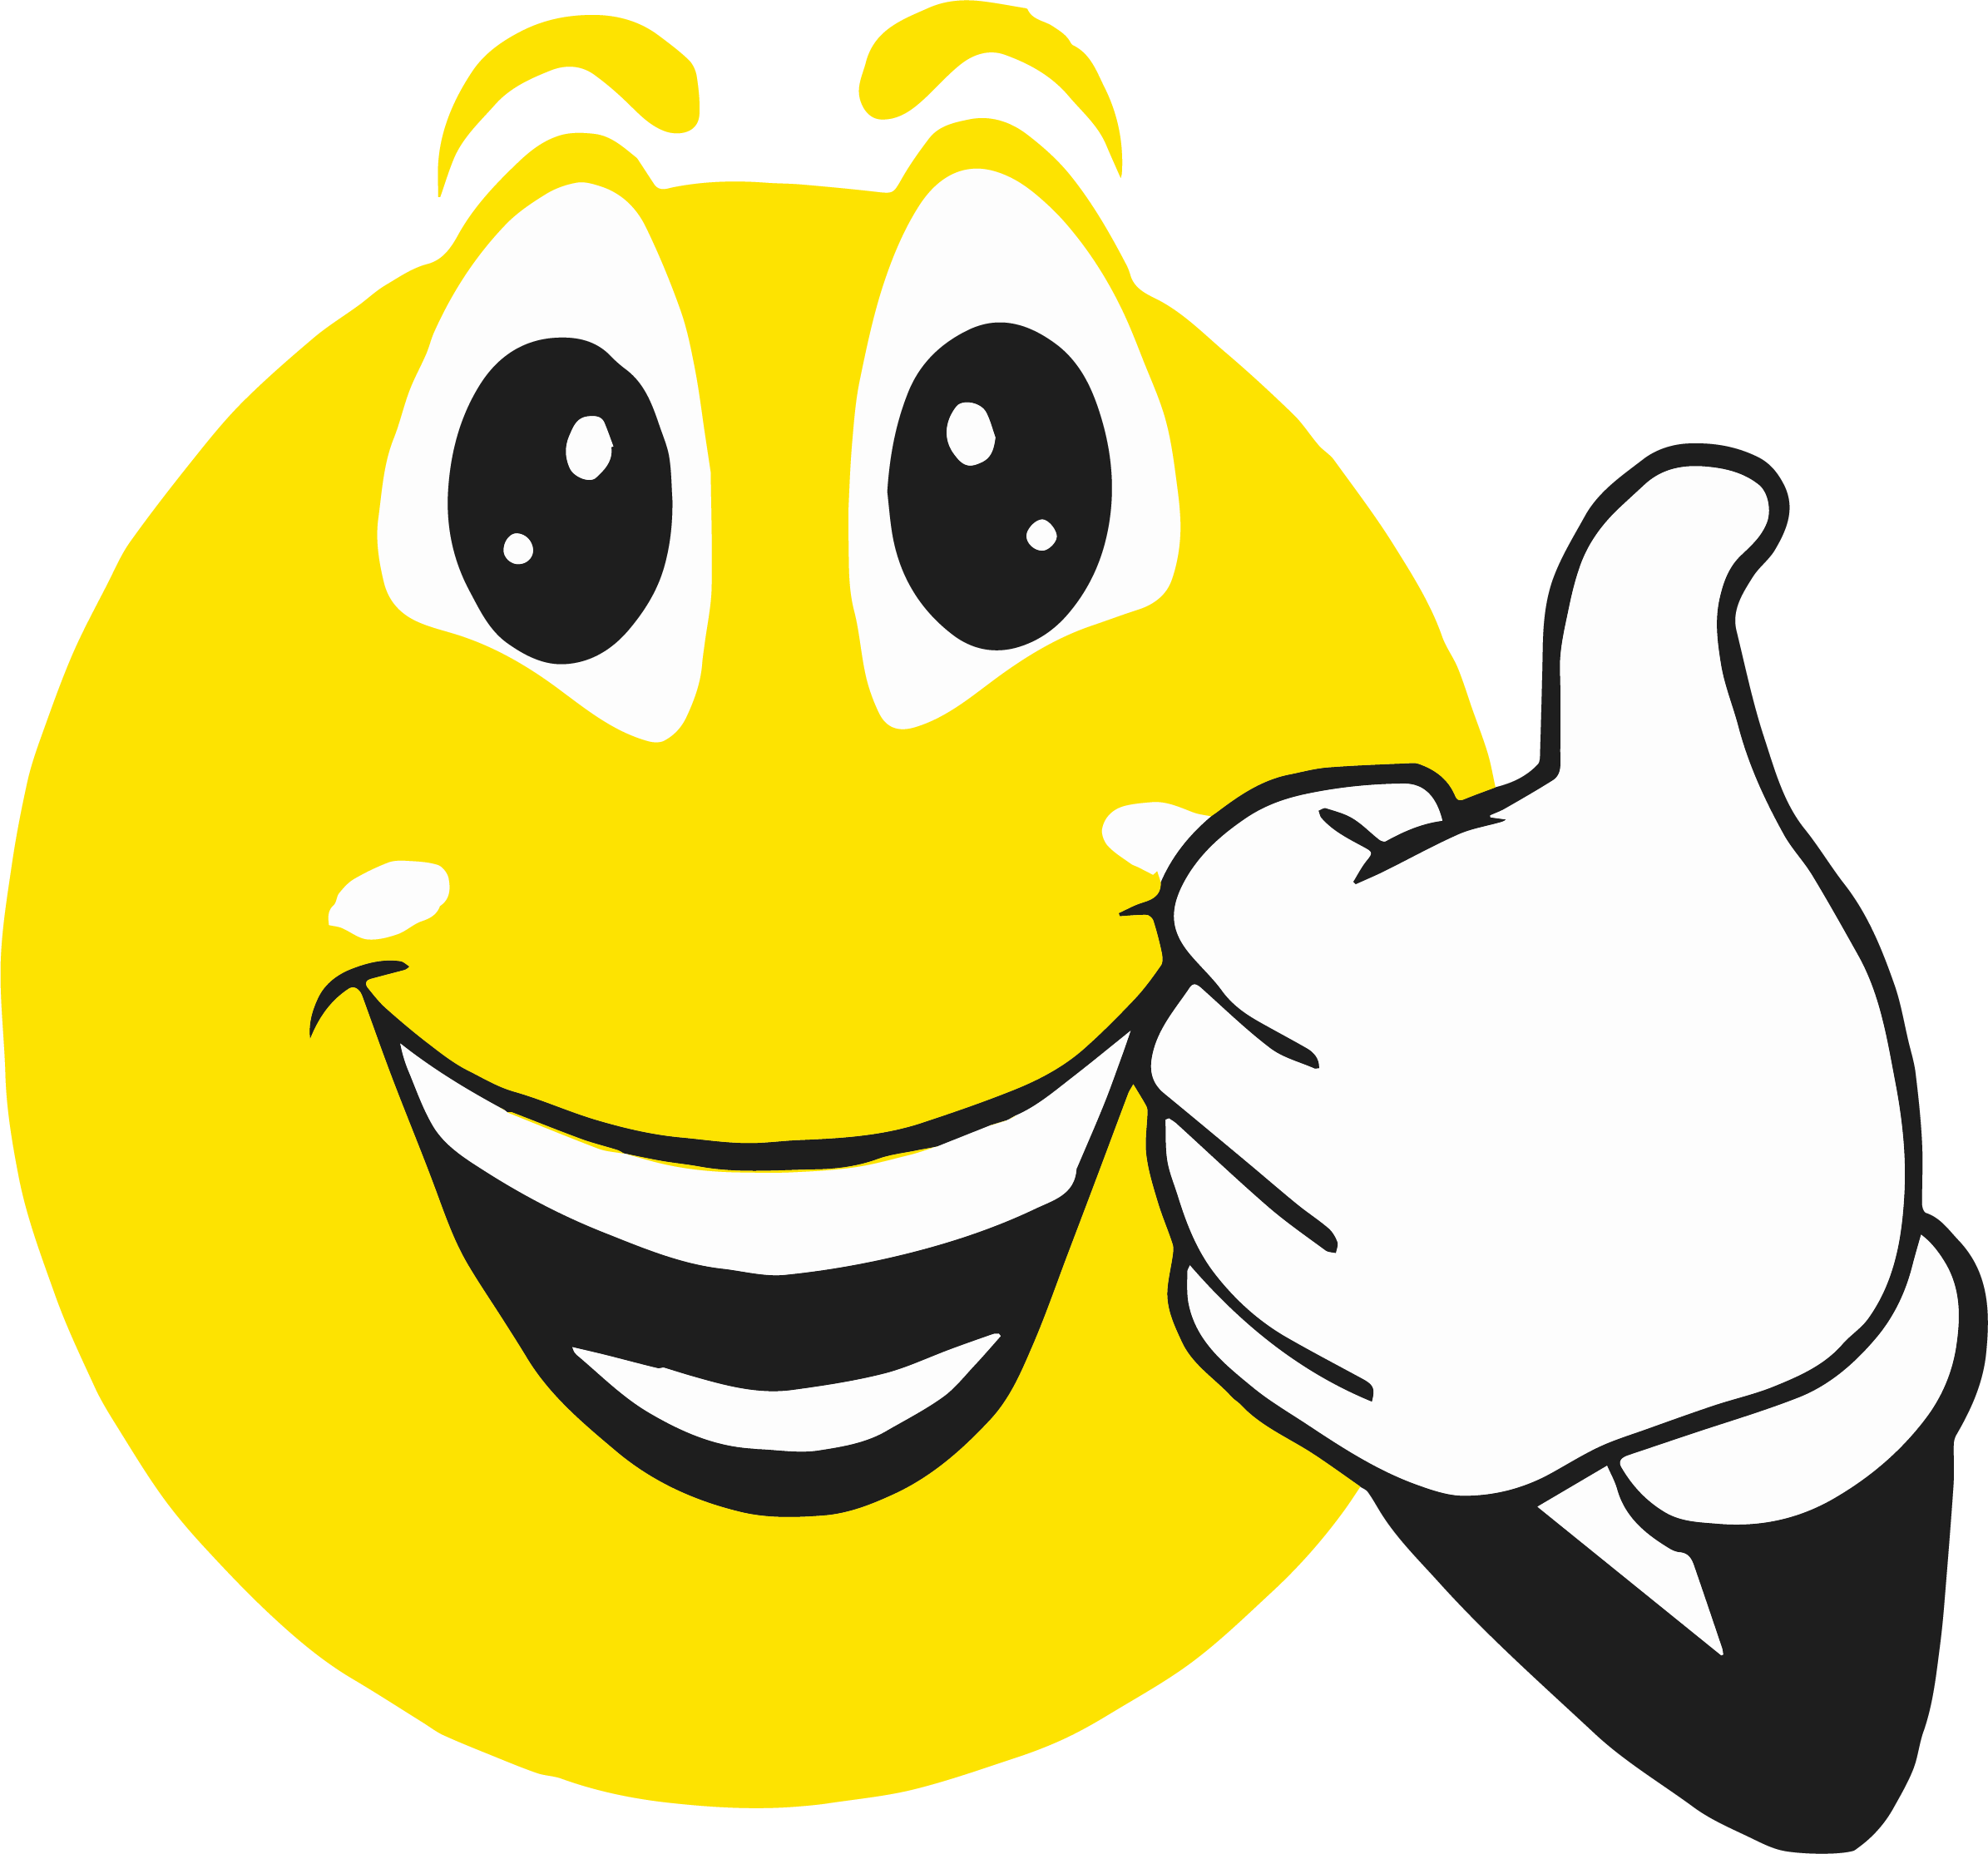 Clipart smile content face. Smiley clip art thumbs